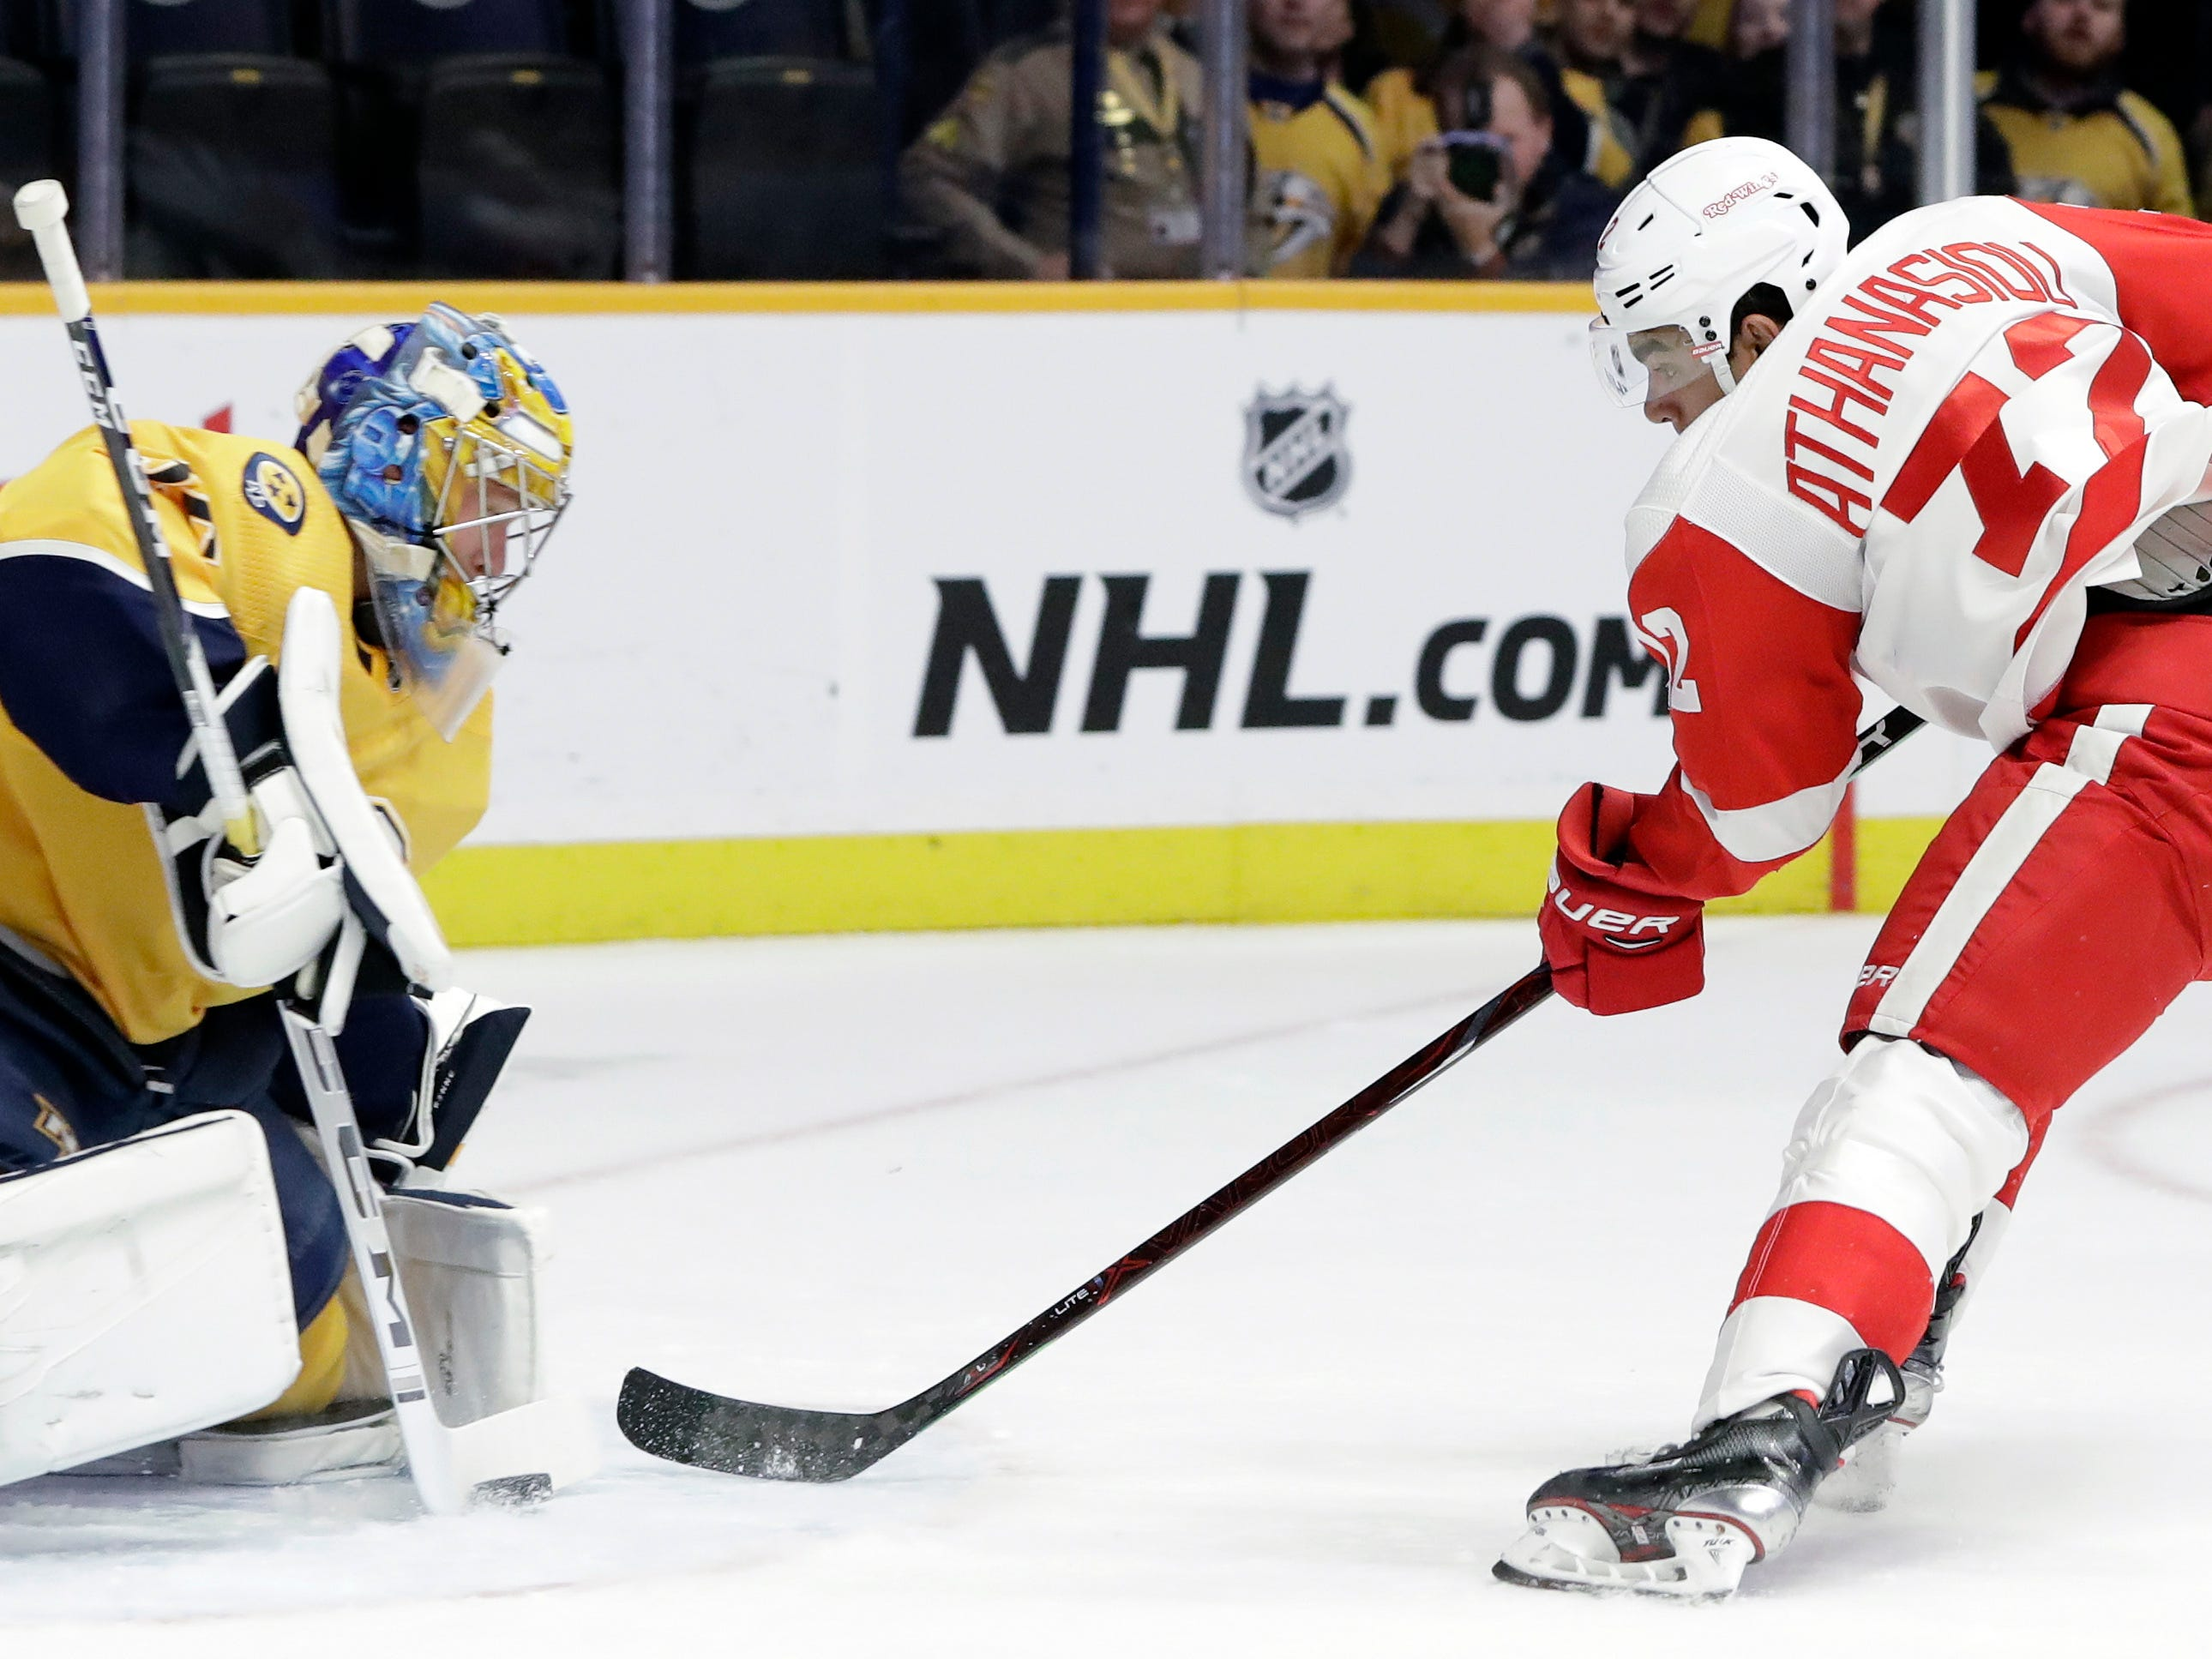 Detroit Red Wings center Andreas Athanasiou (72) shoots against Nashville Predators goaltender Pekka Rinne (35), of Finland, during the first period.